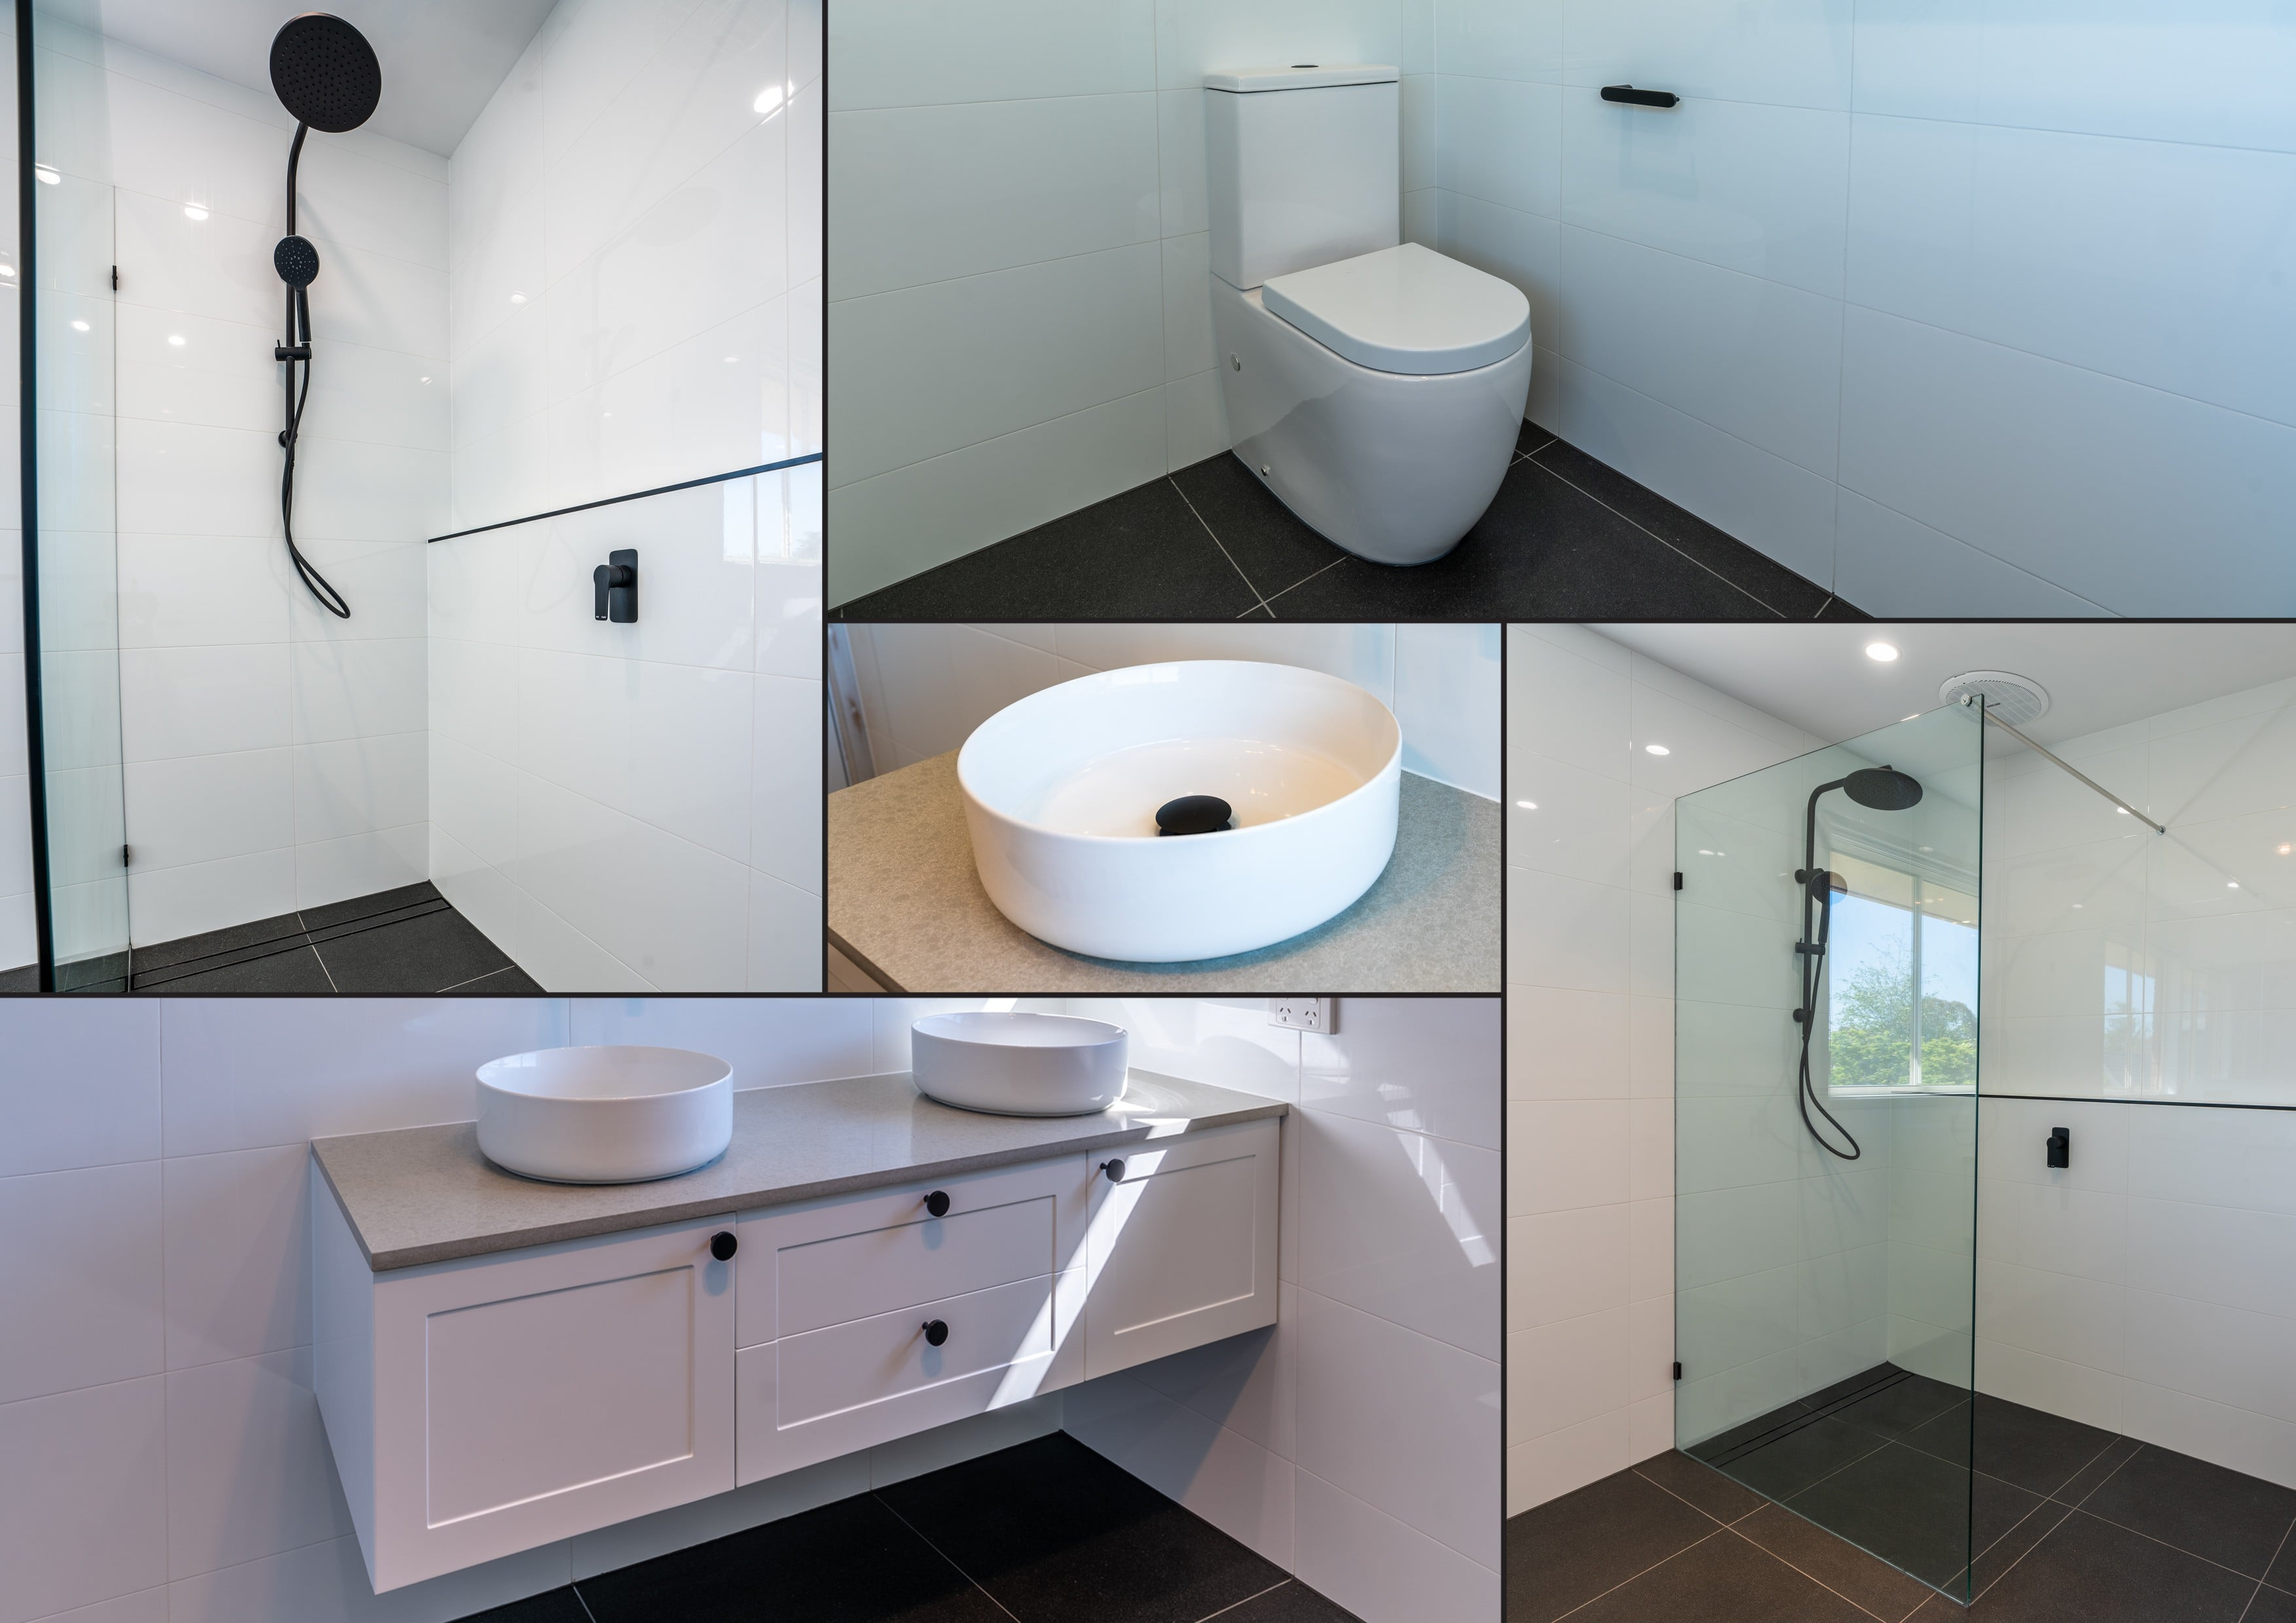 Top Quality Kitchen, Bathroom, and Laundry Renovations in Melbourne